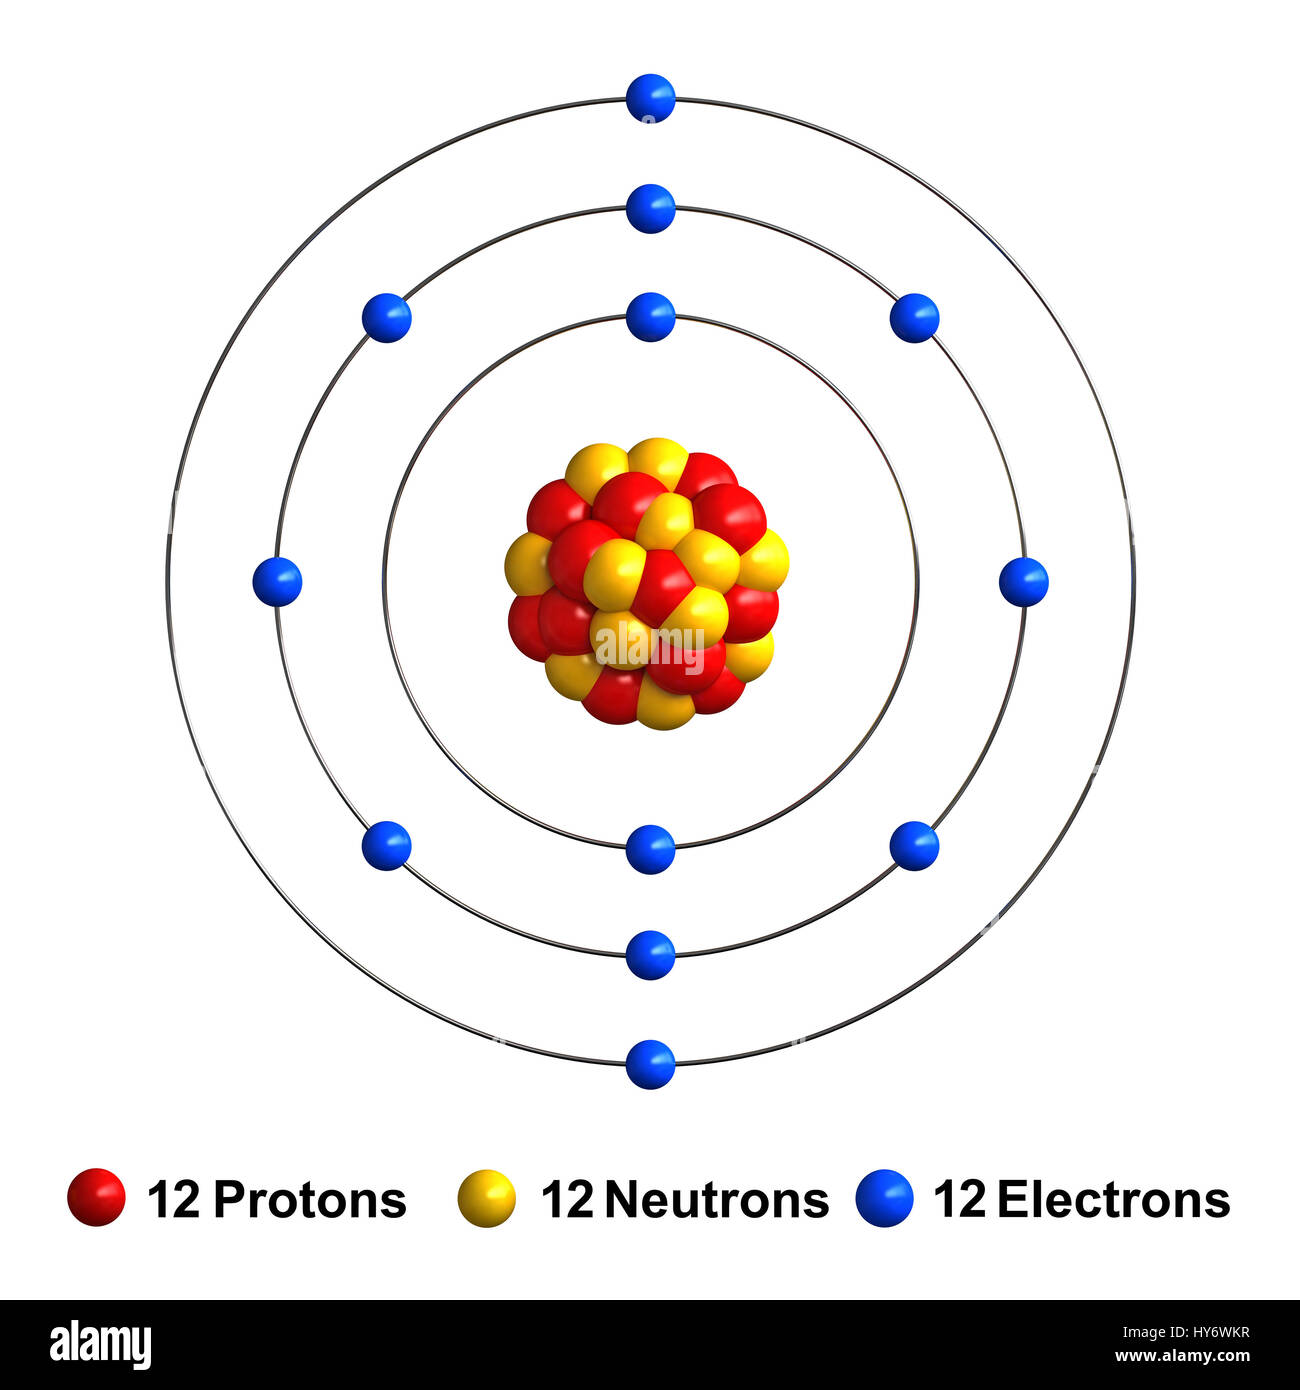 3d render of atom structure of magnesium isolated over white stock 3d render of atom structure of magnesium isolated over white background protons are represented as red spheres neutron as yellow spheres electrons a ccuart Image collections